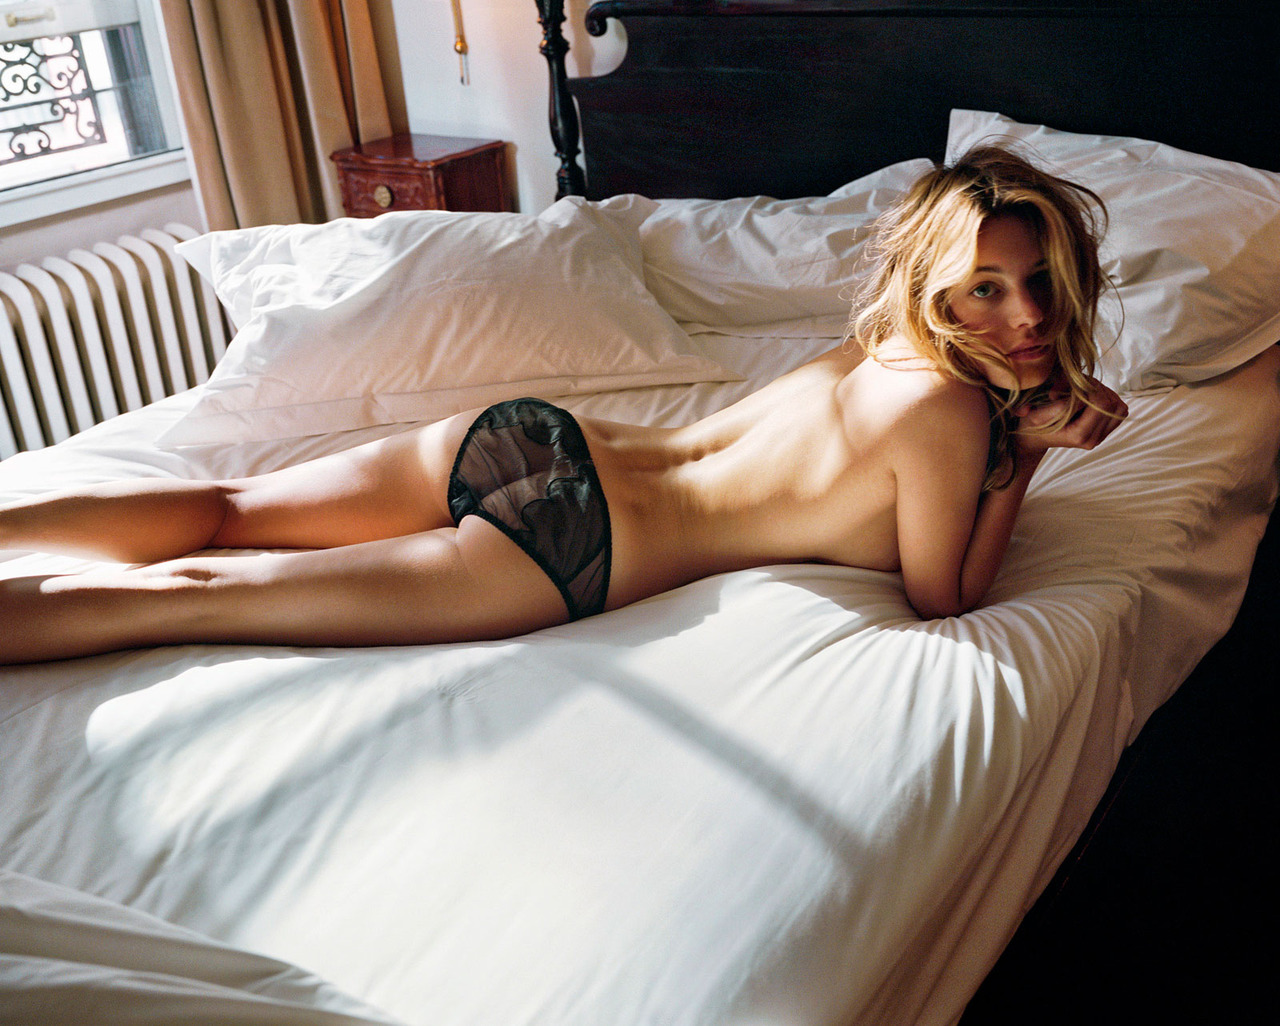 Sorry, Pamela hanson camille rowe what excellent